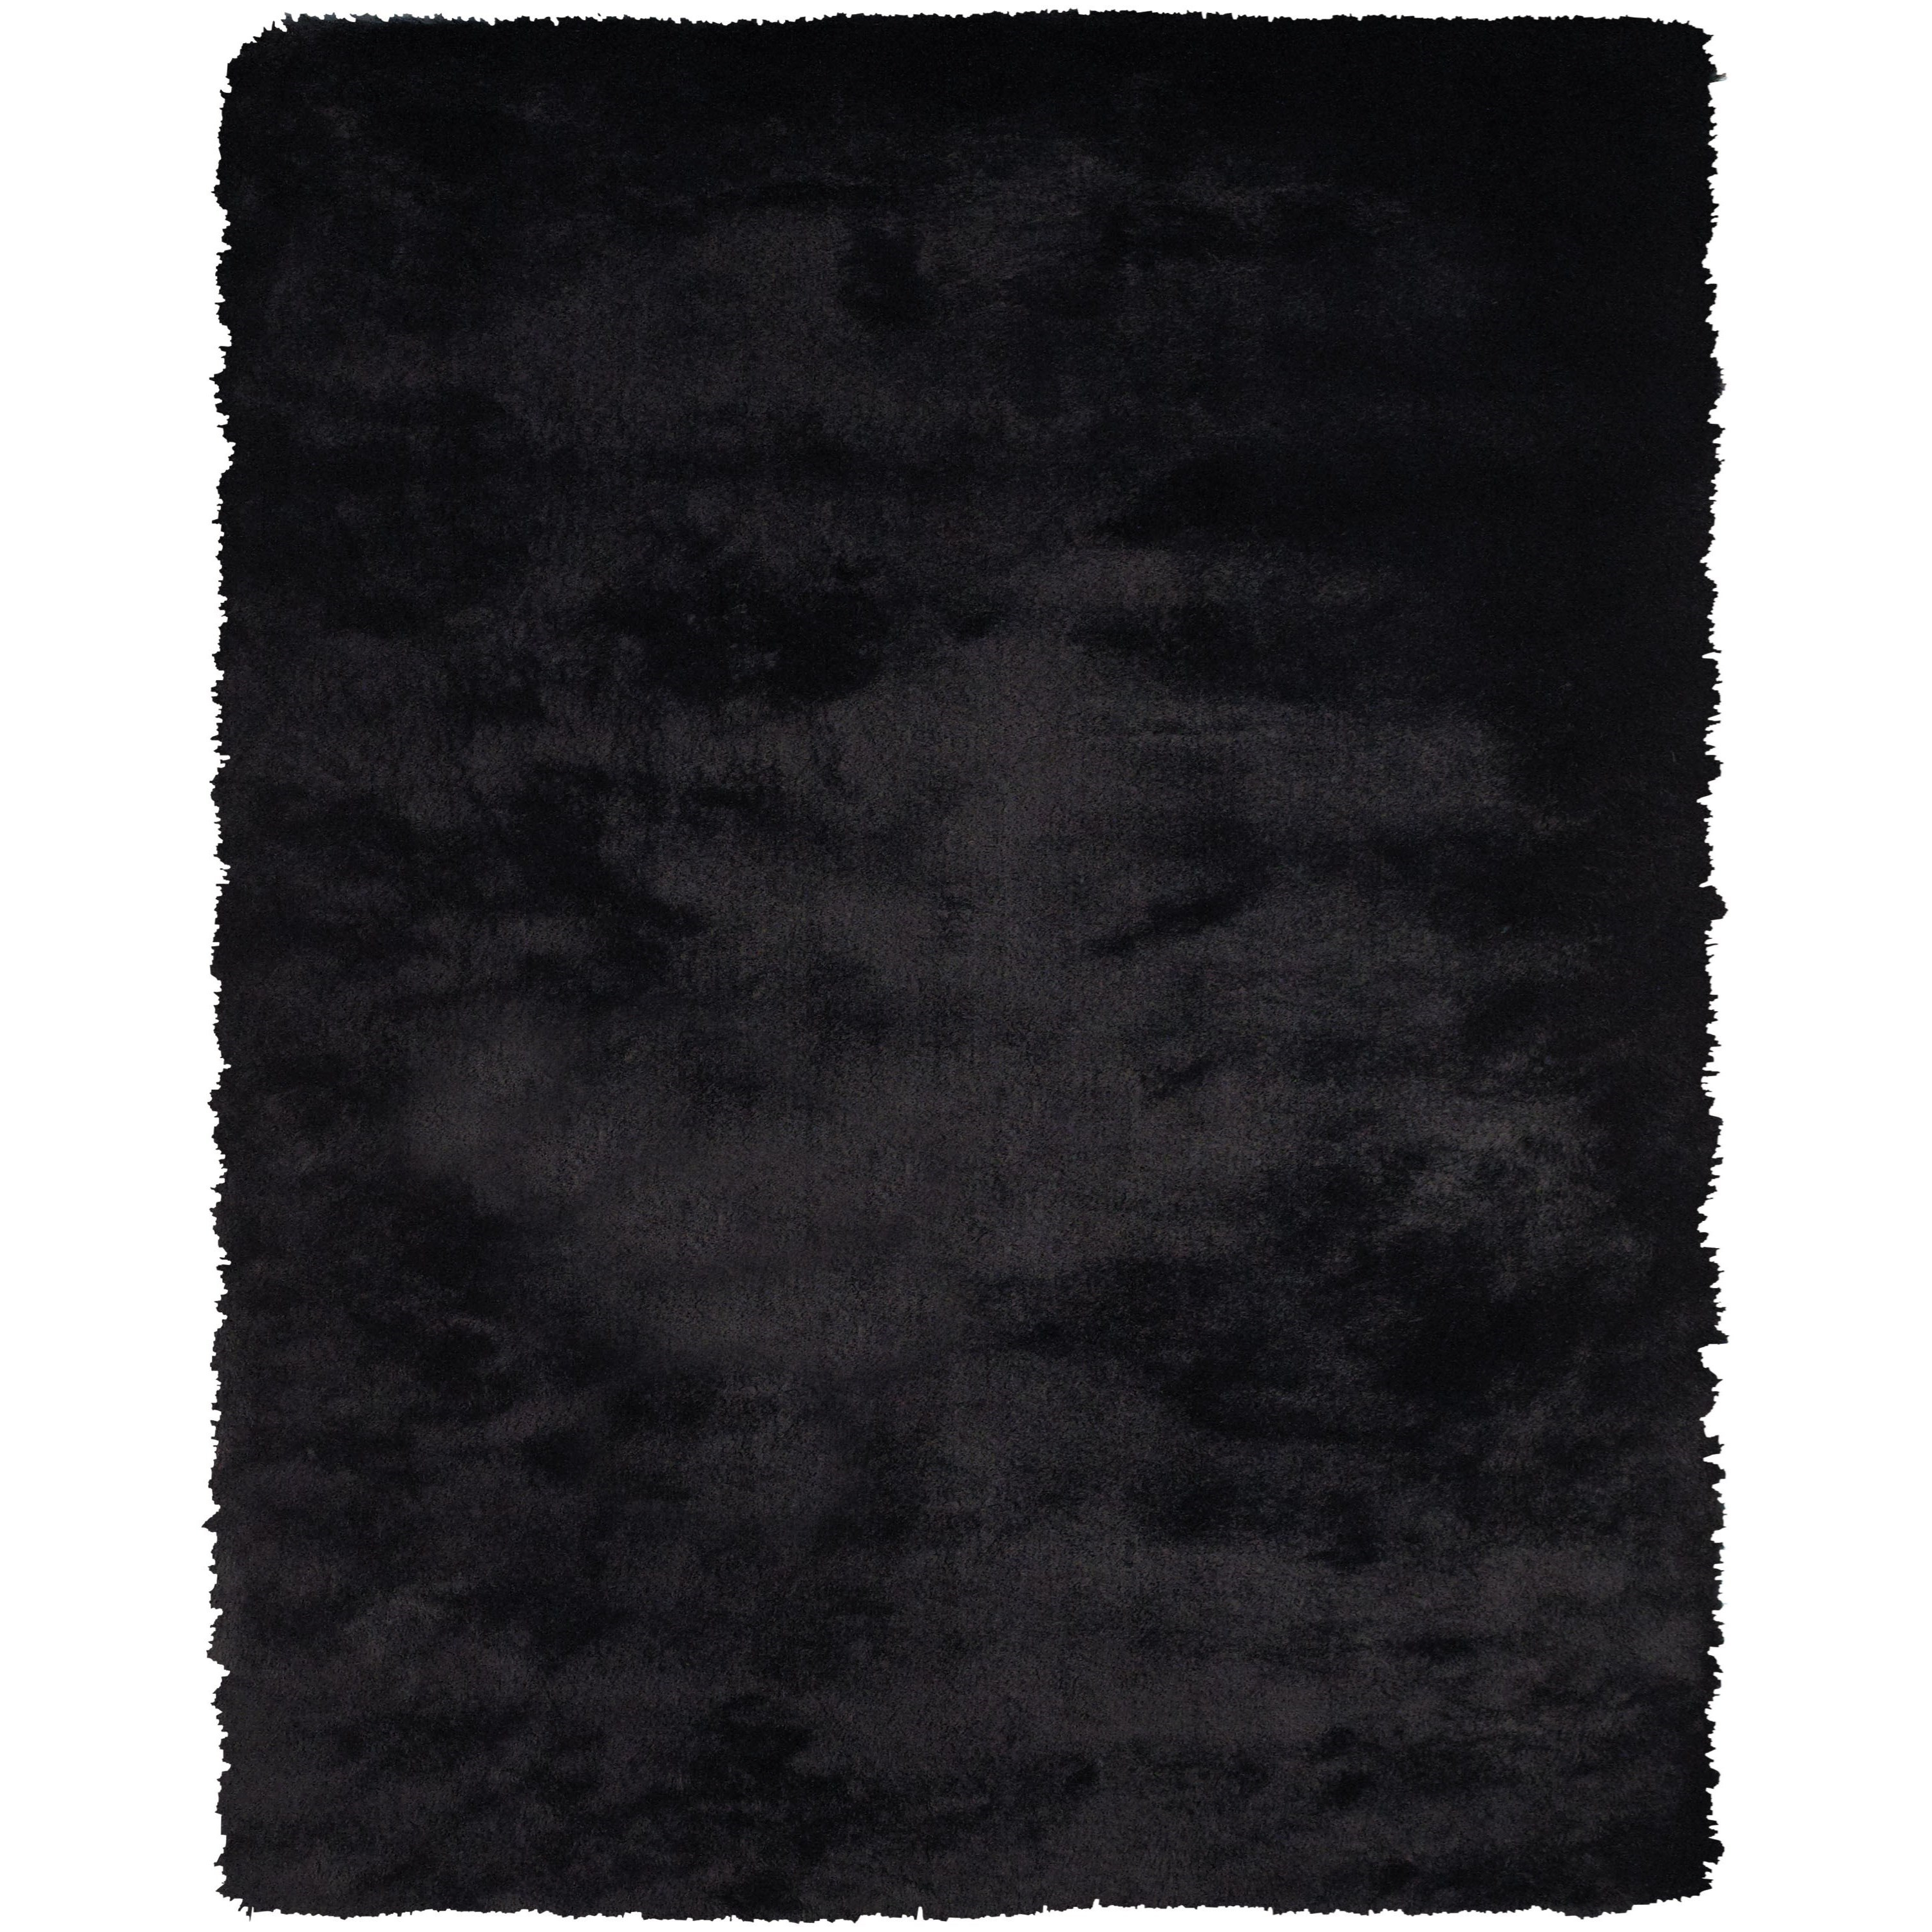 """Indochine Black 4'-9"""" X 7'-6"""" Area Rug by Feizy Rugs at Sprintz Furniture"""